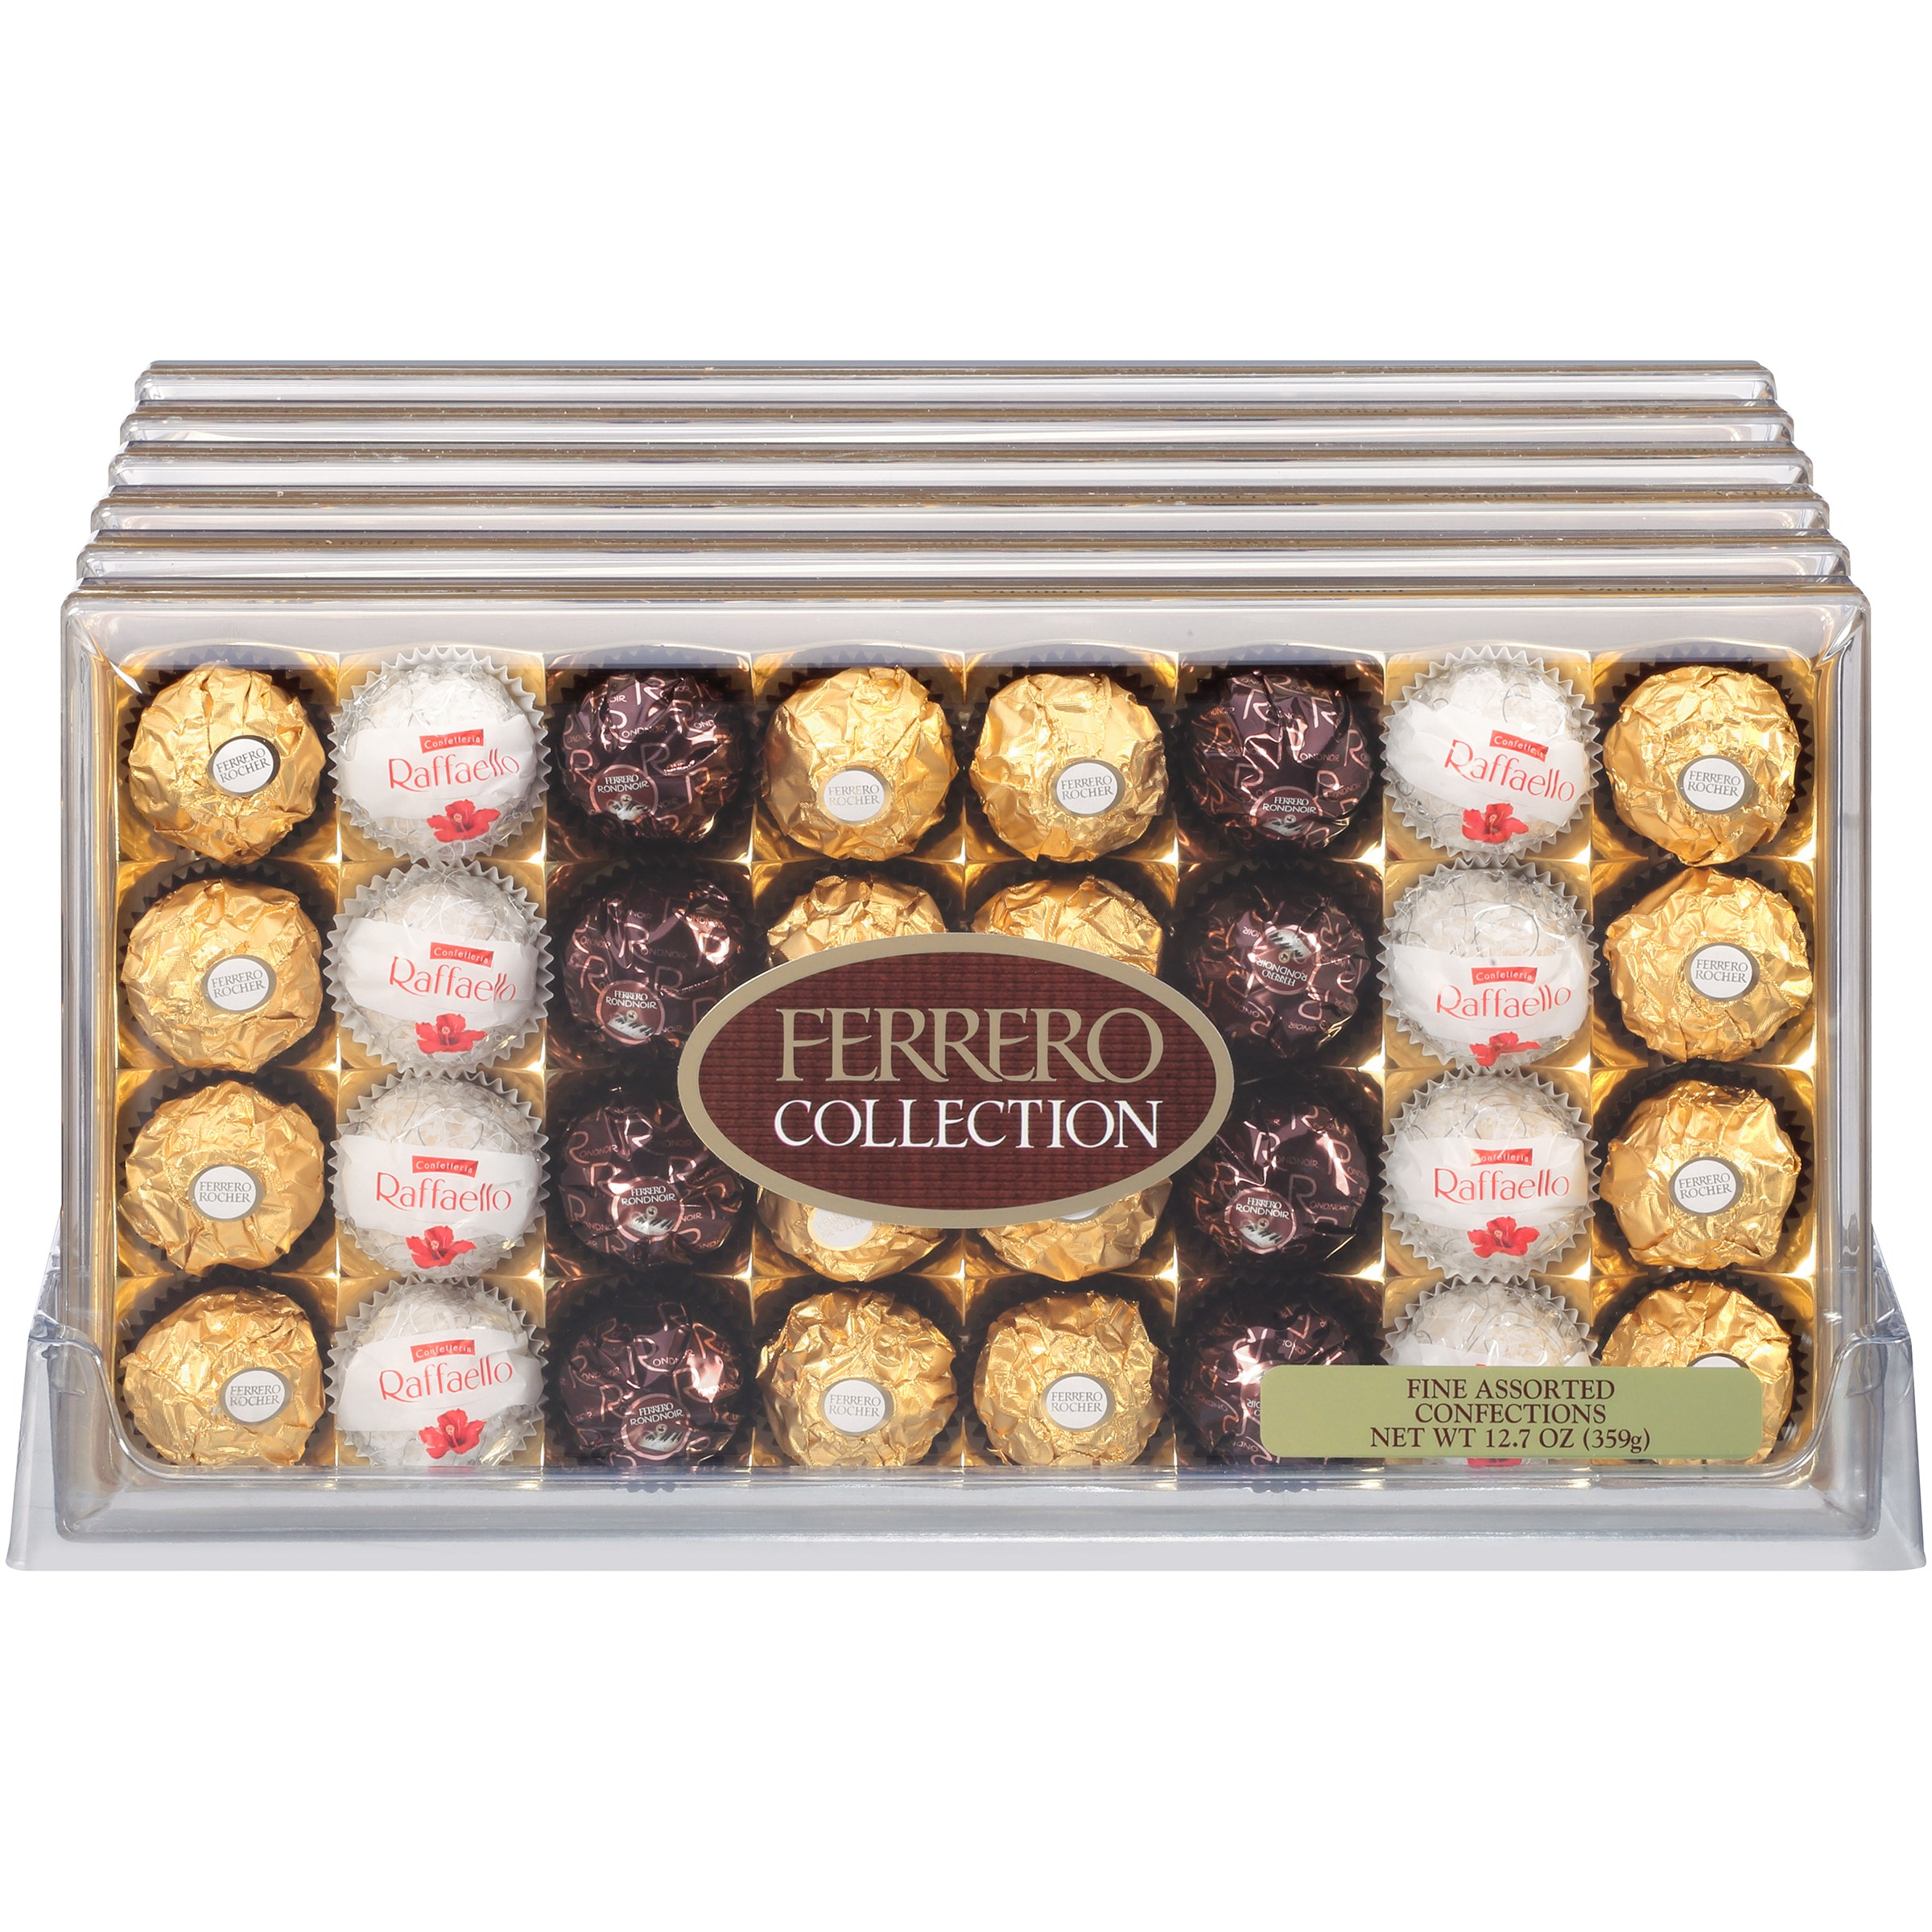 Ferrero Rocher Collection Assorted Confections 127 Oz 32 Count